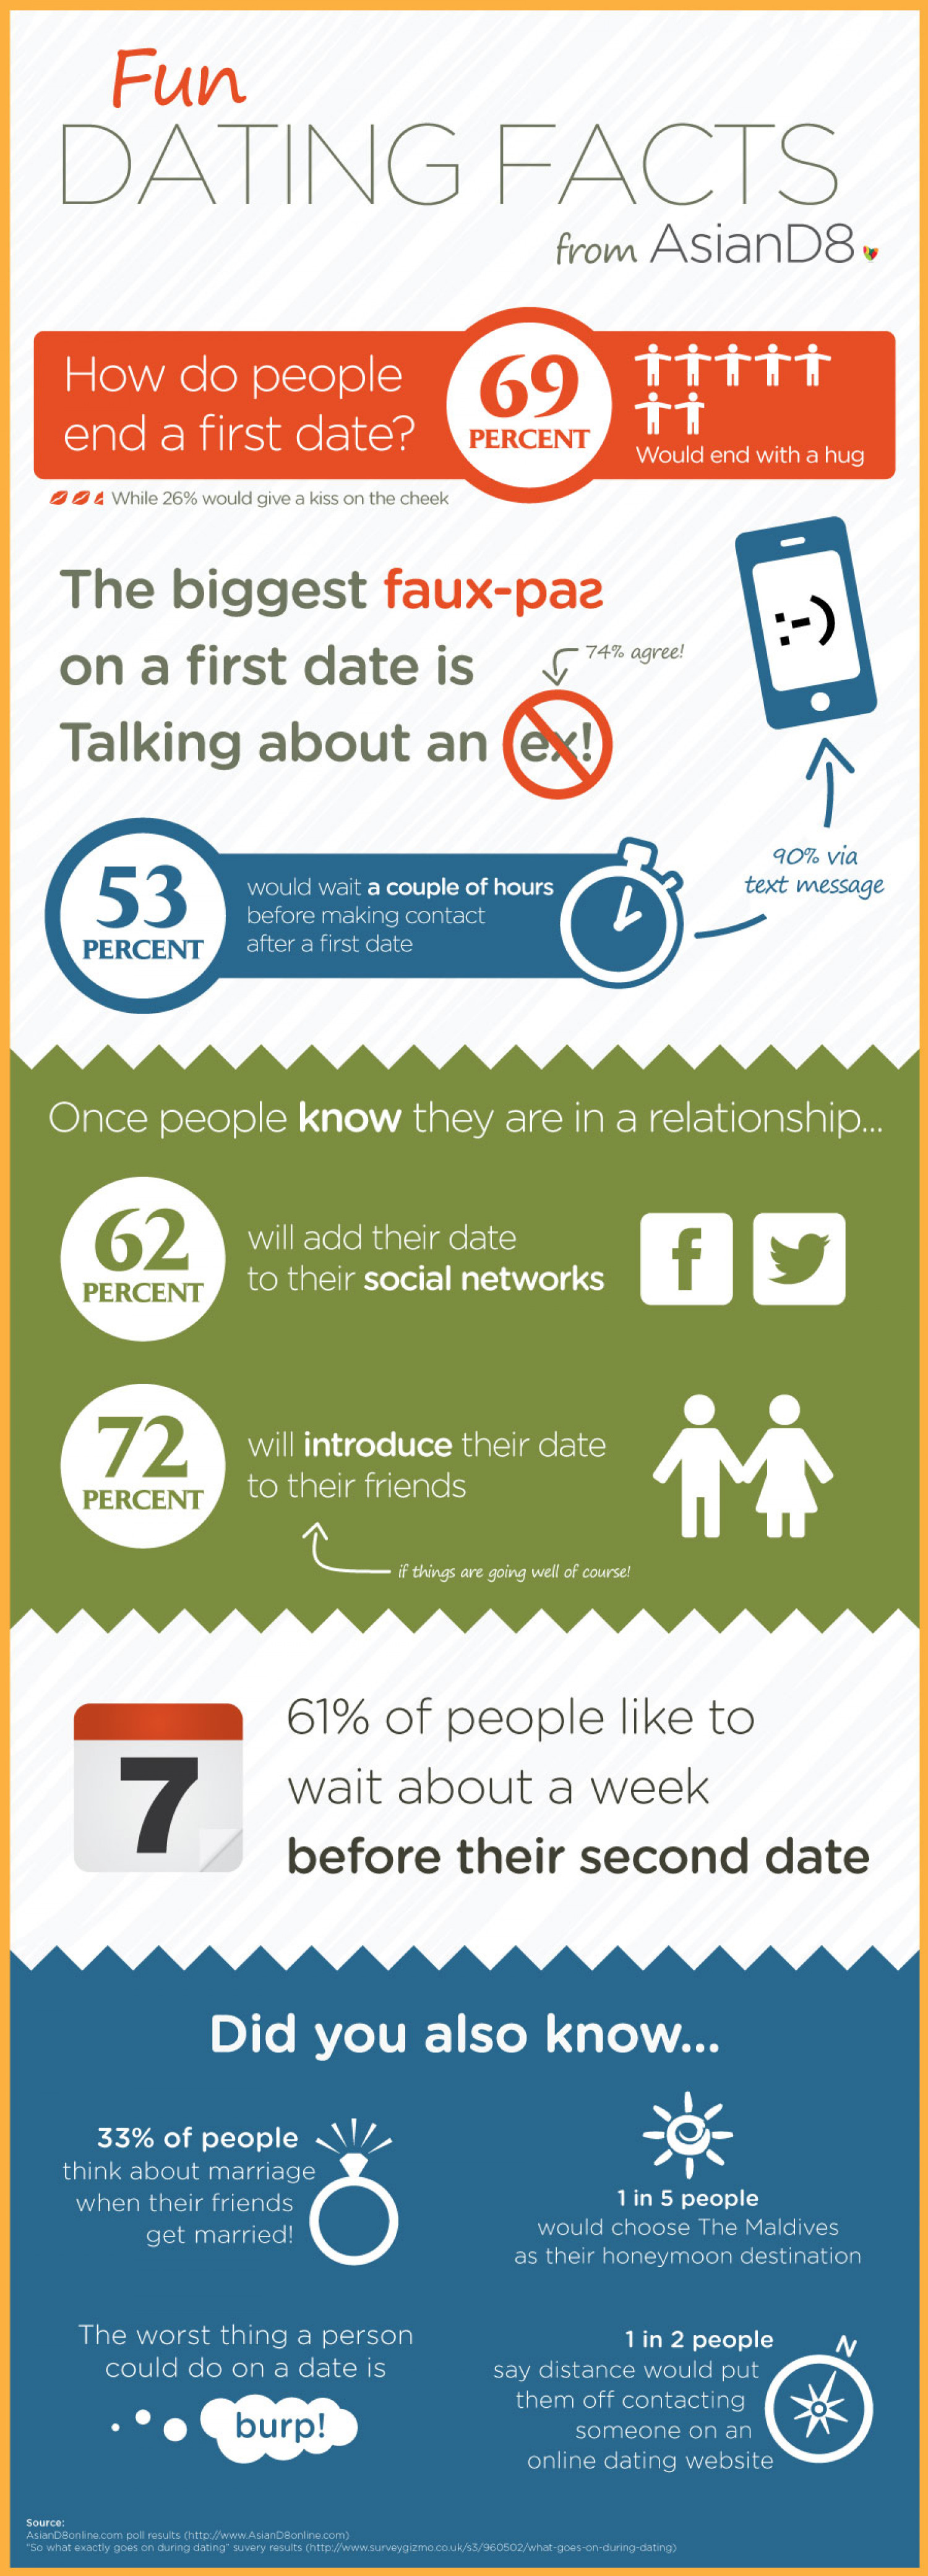 Fun Dating Facts from AsianD8 Infographic